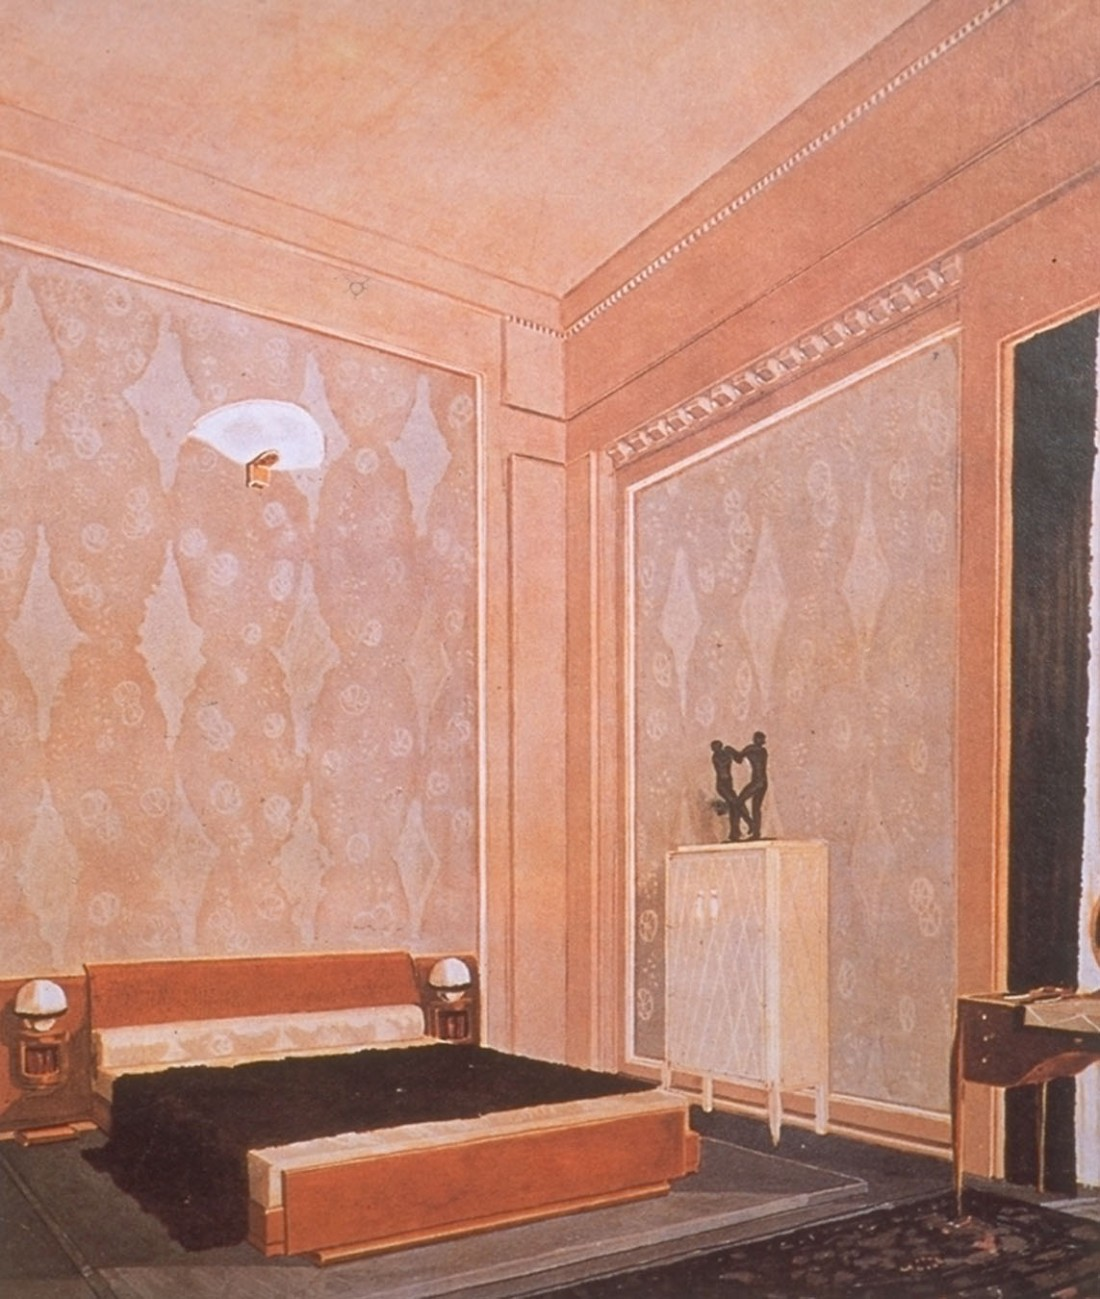 Bedroom in the Hotel du Collectionneur.